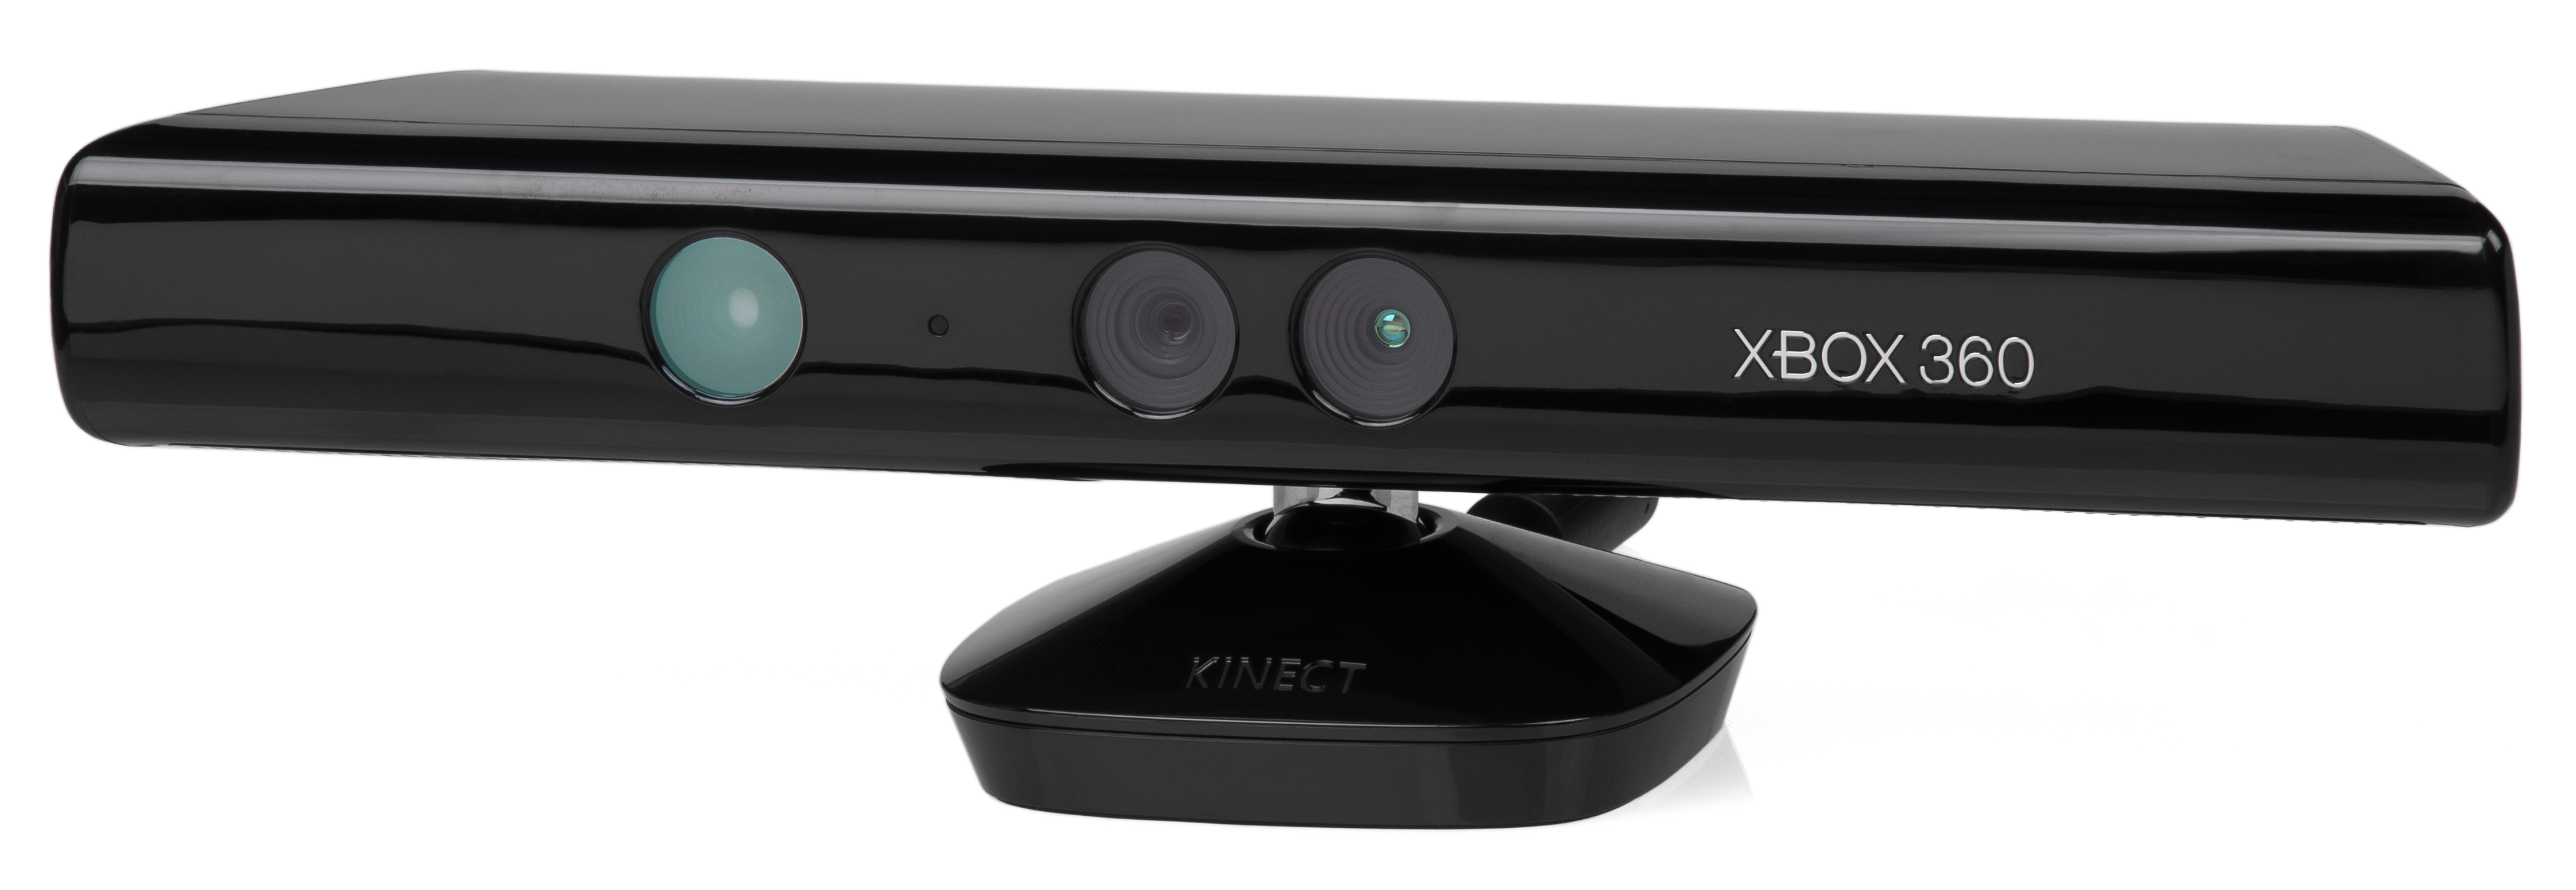 File:Xbox-360-Kinect-Standalone png - Wikimedia Commons